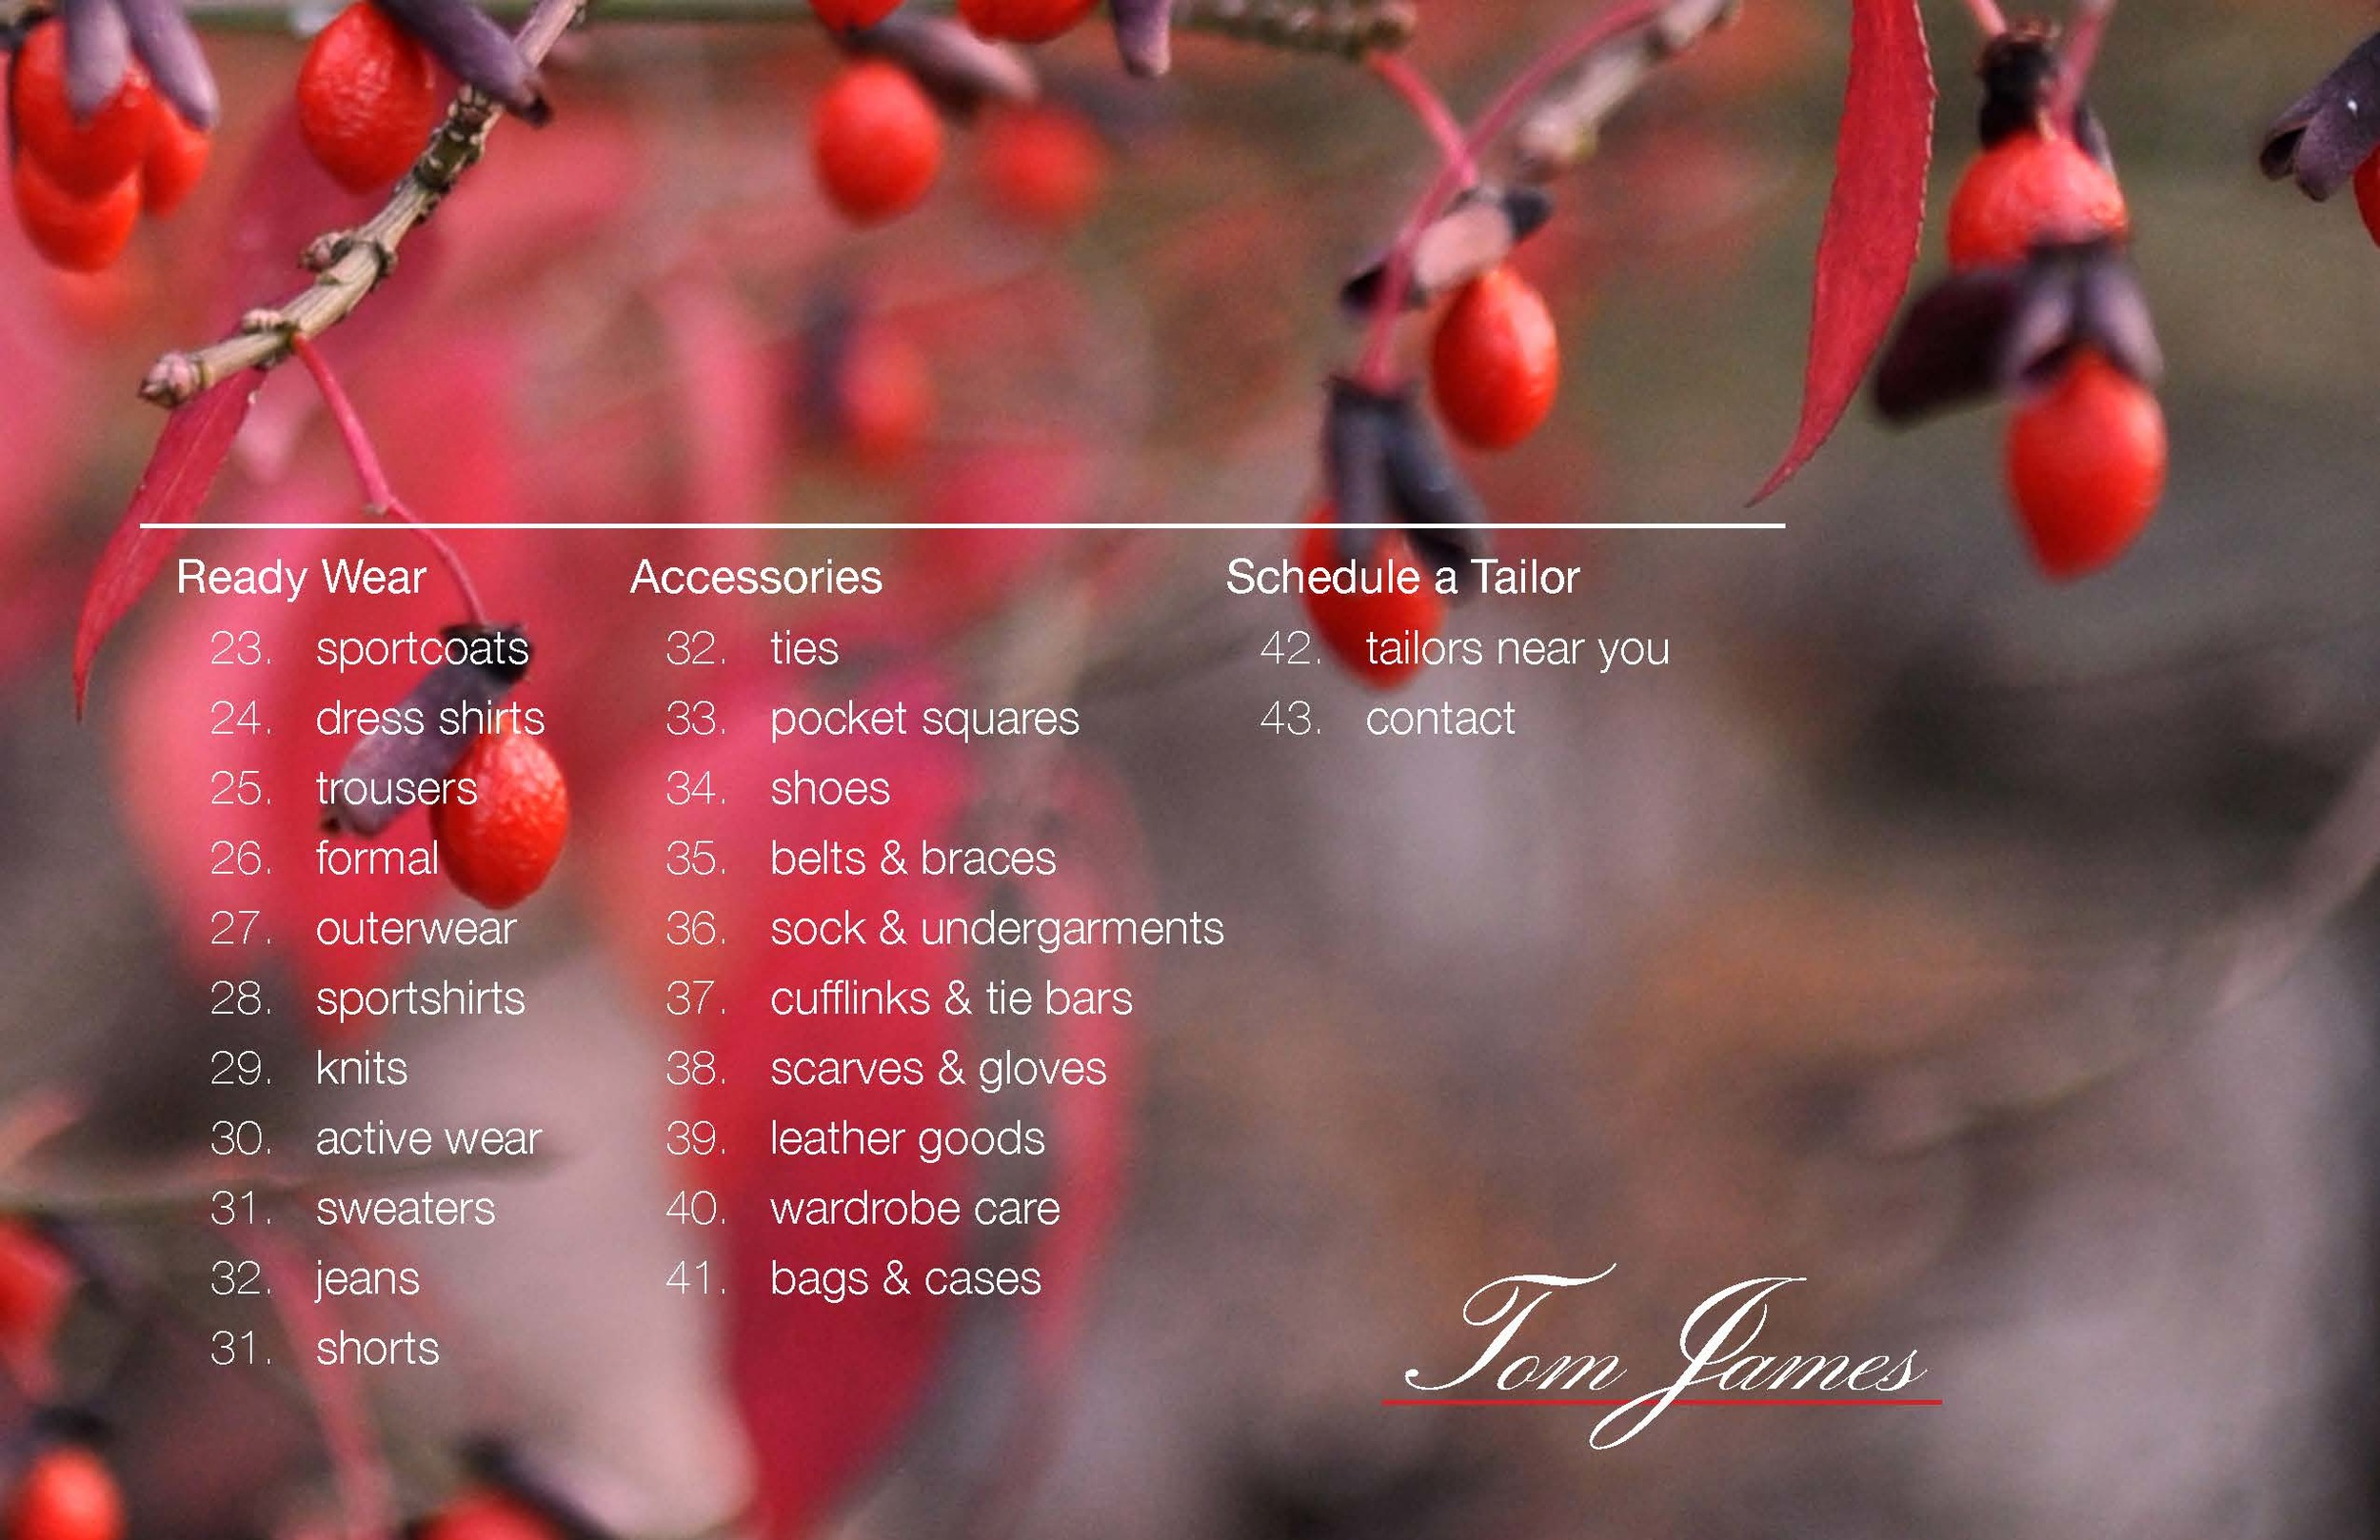 Tom James Fall Catalog 2015 pages_Page_03.jpg